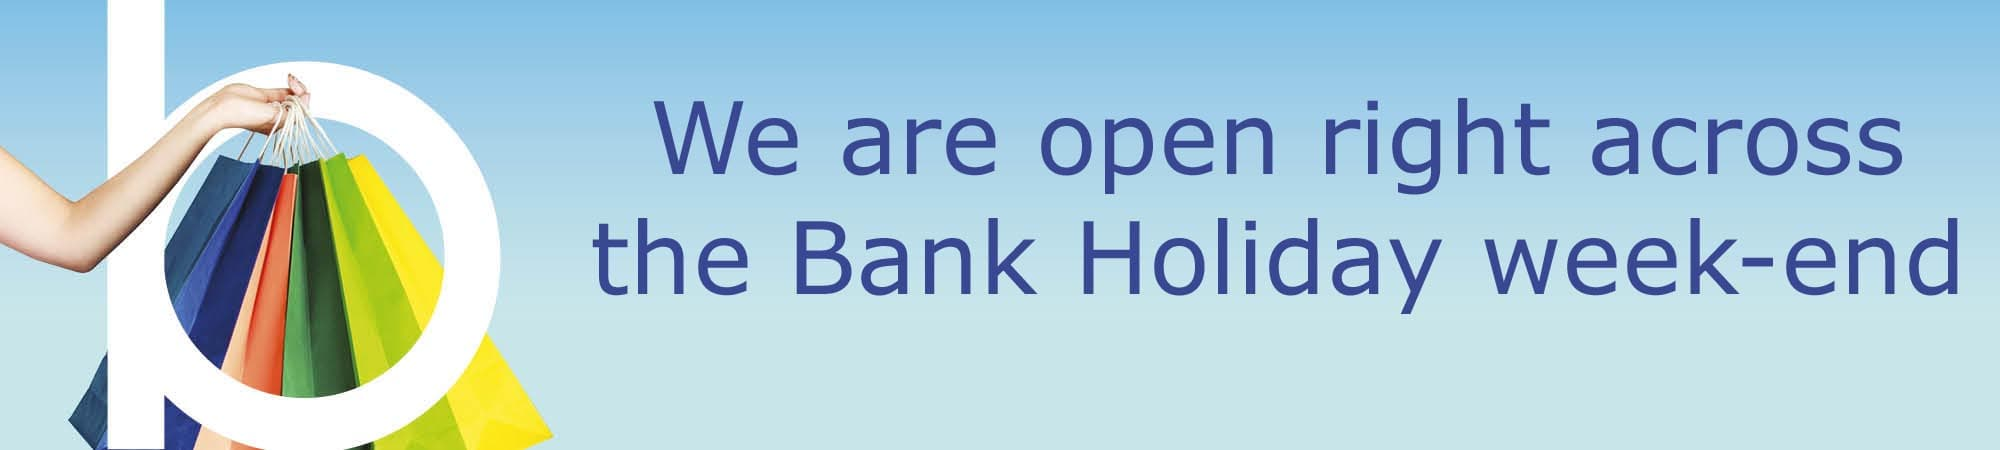 Open Bank Holiday